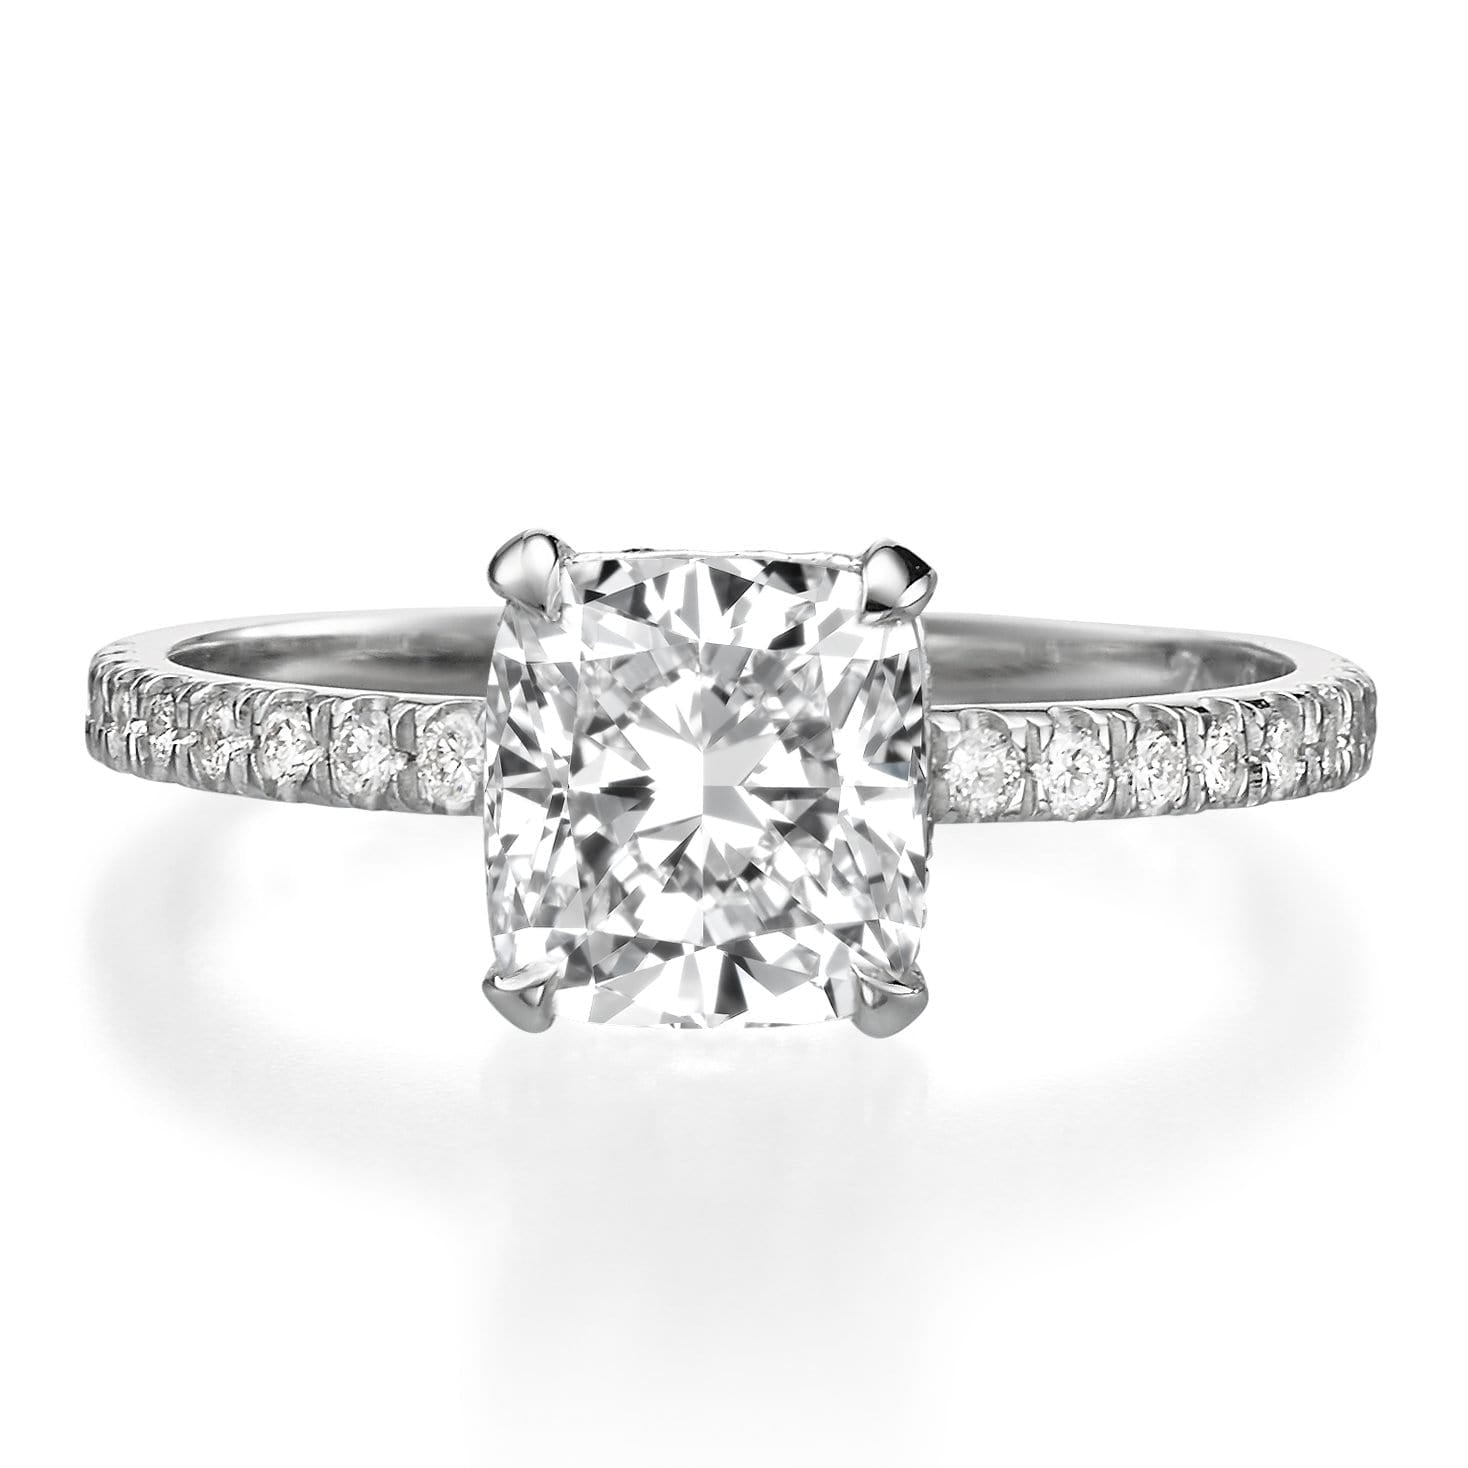 2.02 ct Cushion Cut Diamond Engagement Ring